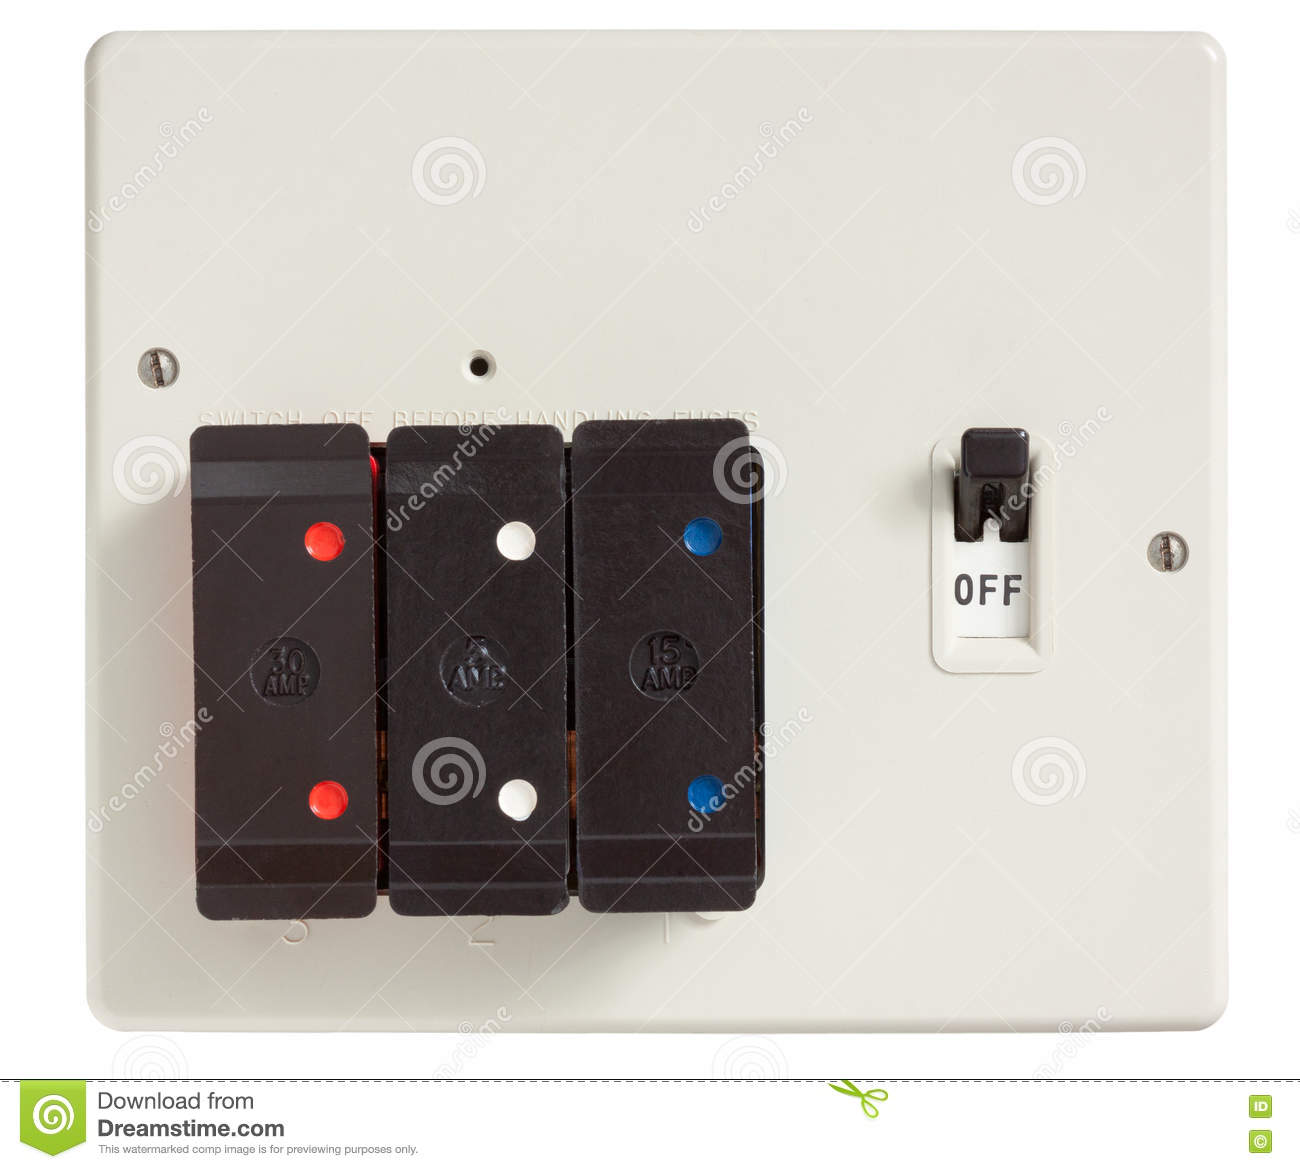 hight resolution of old fuse box stock image image of home electricity 73976169 old fuse box home